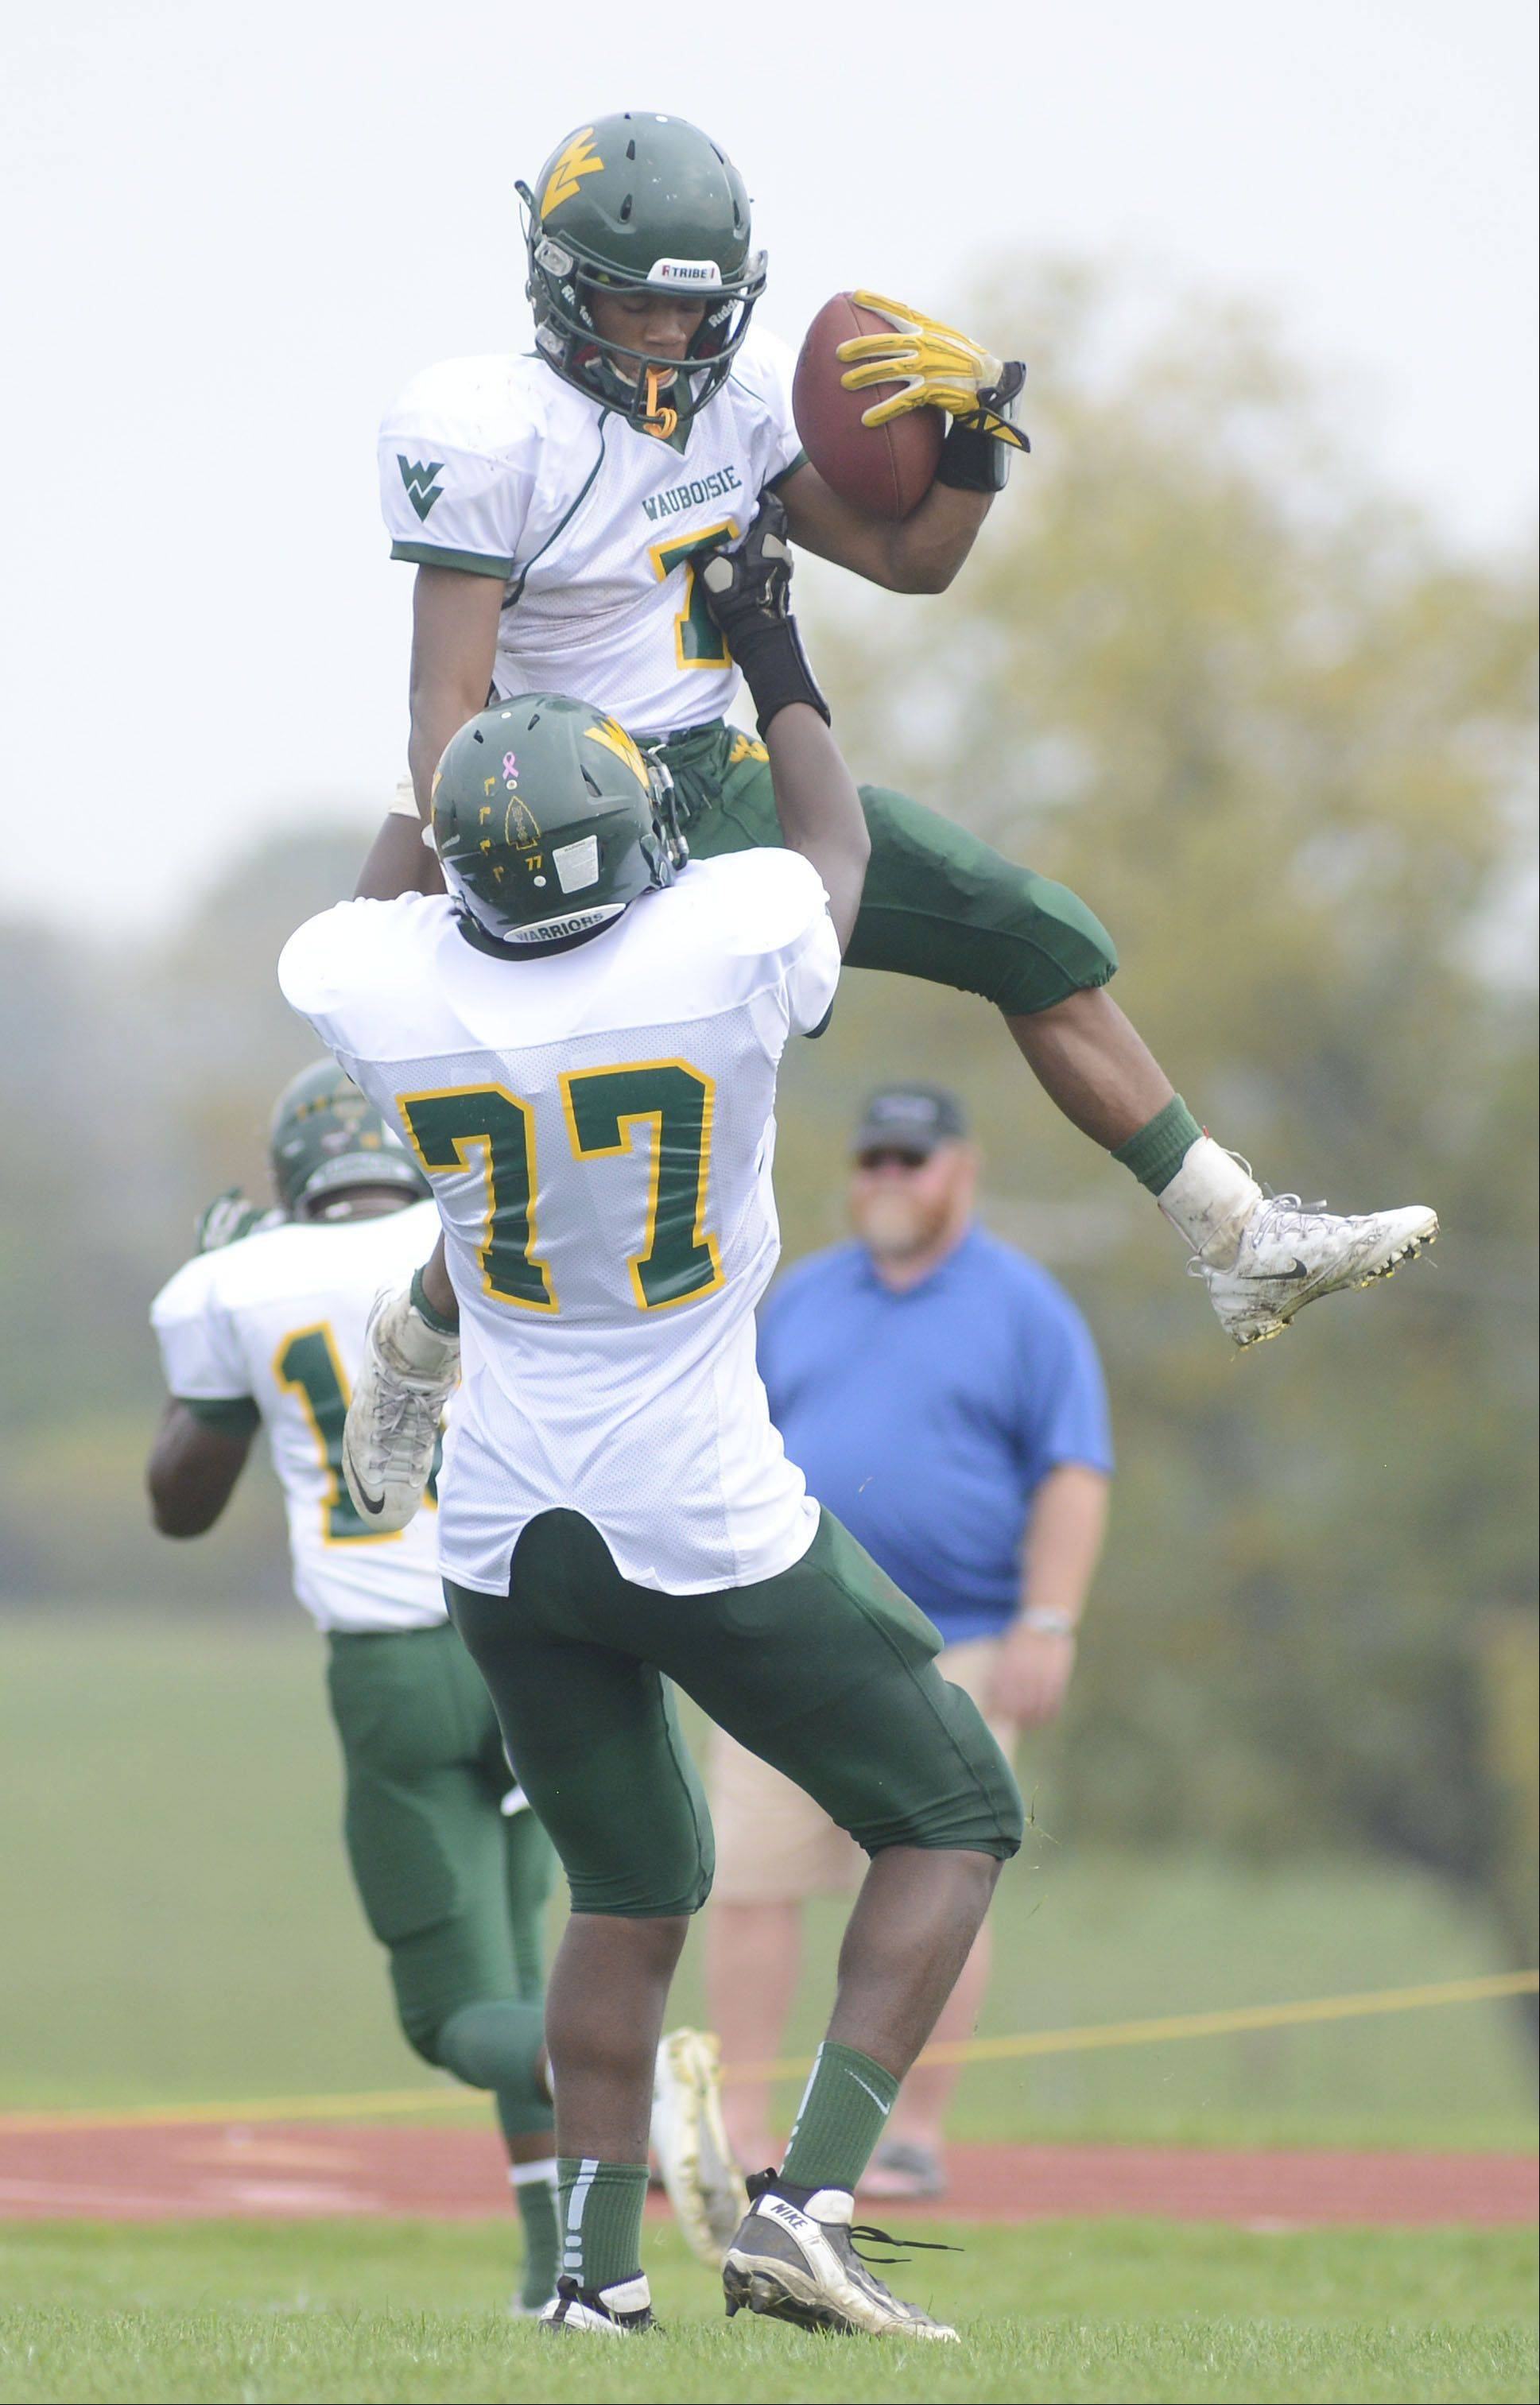 Waubonsie Valley's Tony Durns is hoisted into the air by teammate Jon Harris after scoring a touchdown in the first quarter on Saturday, October 5.